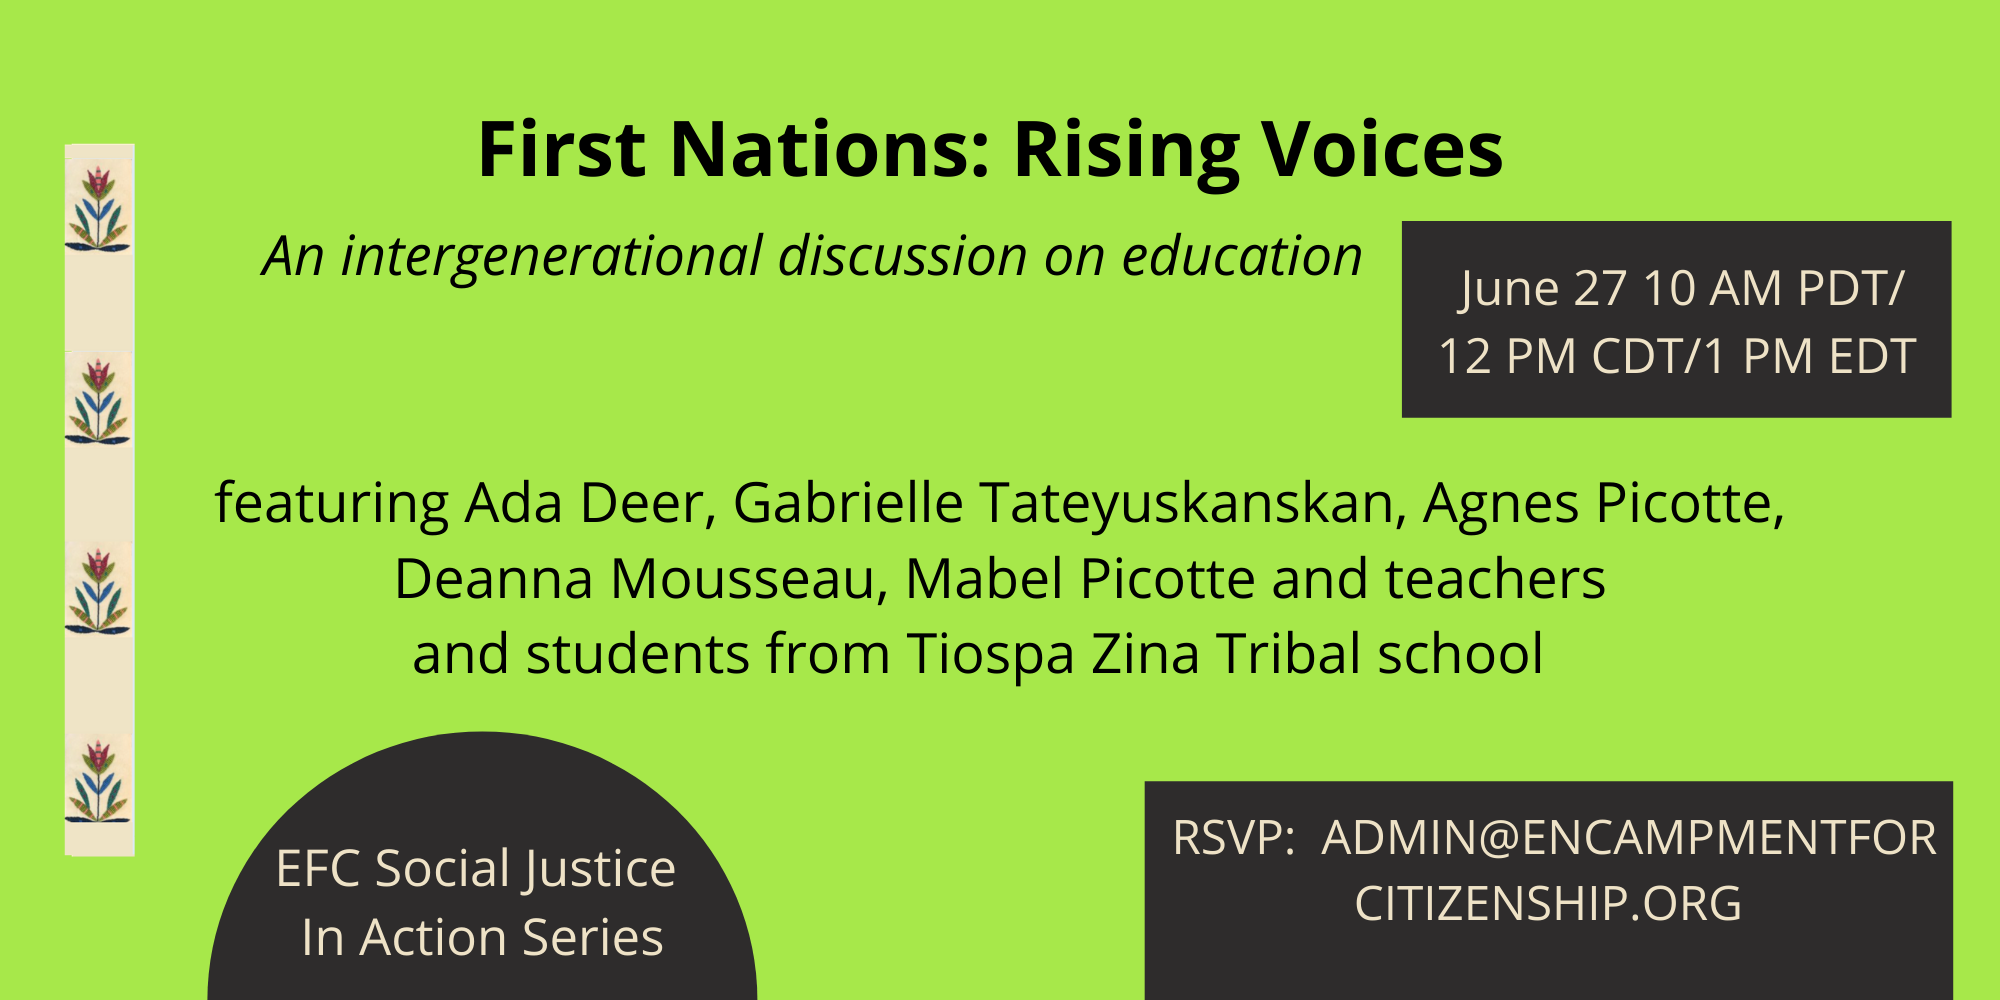 First Nations: Rising Voices on Education